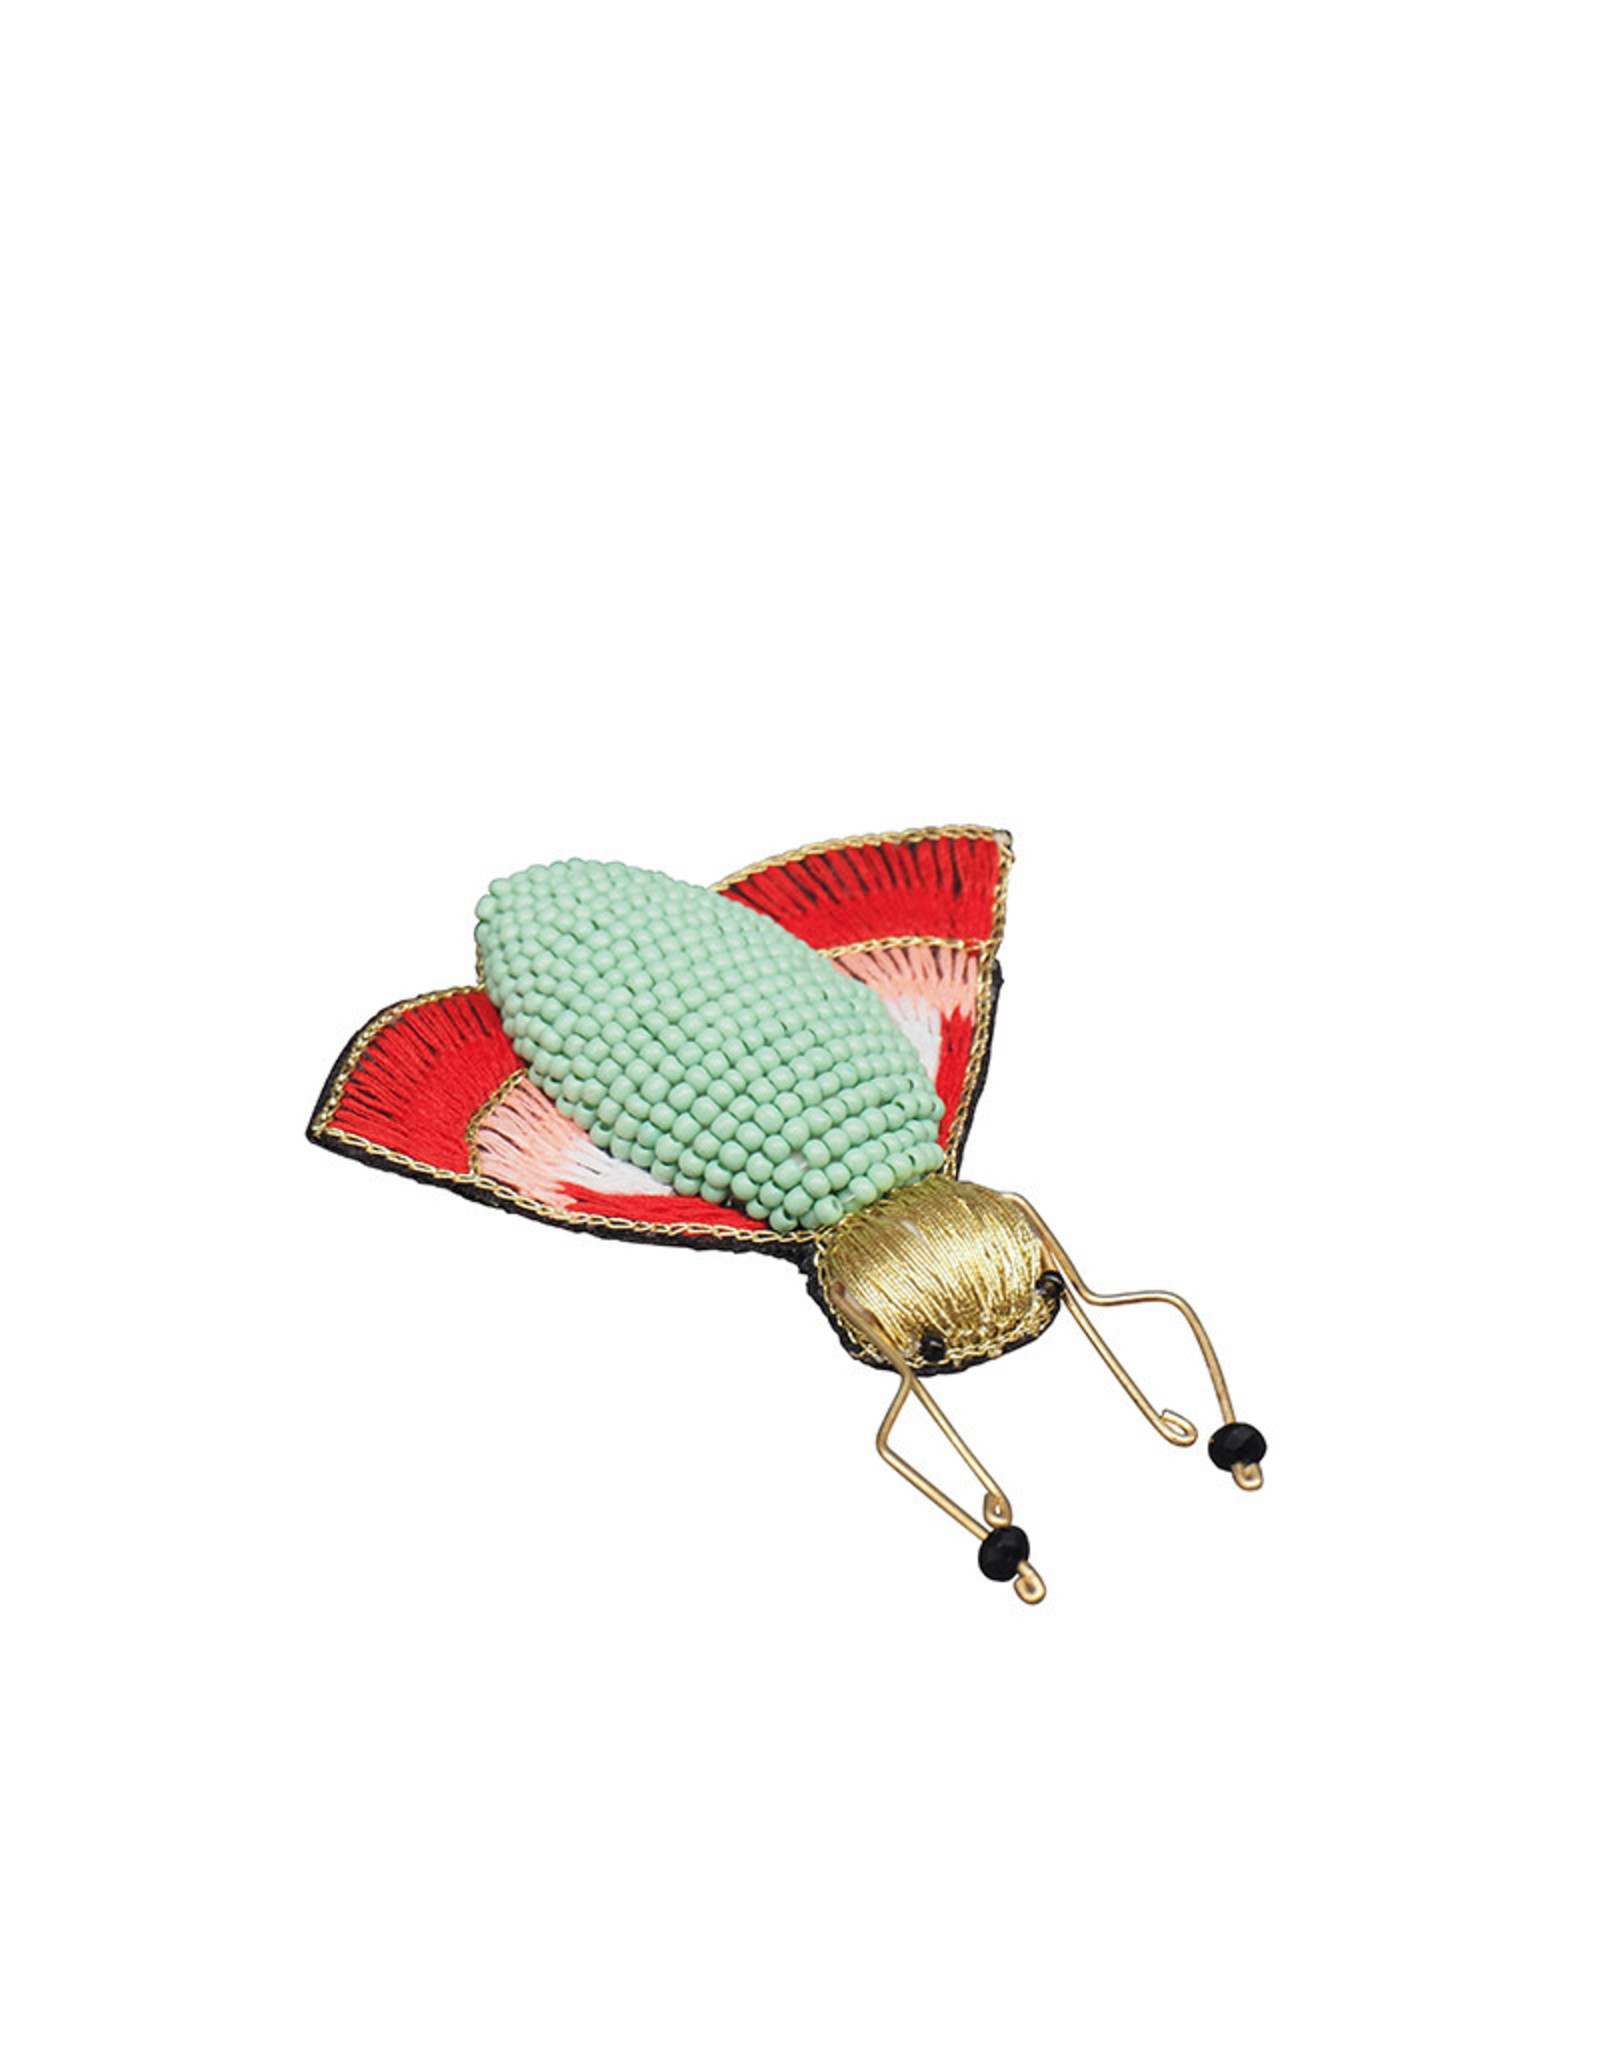 Green insect embroidered brooch